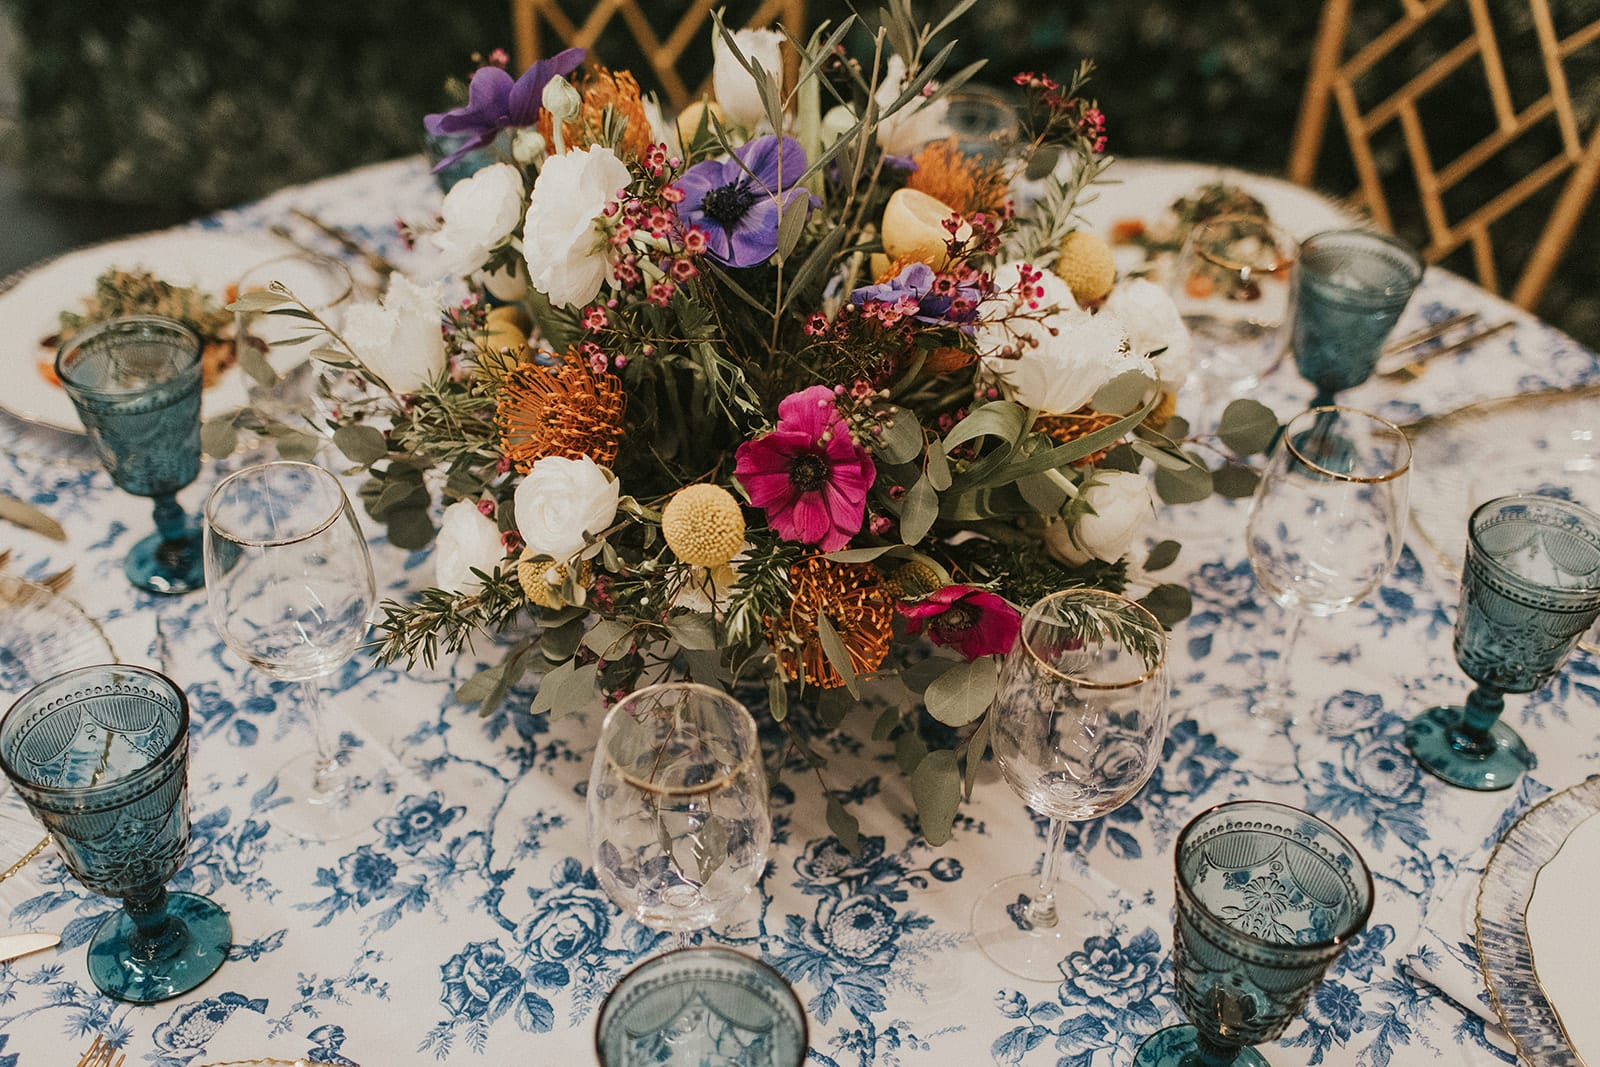 Shelly Pate Photography highlights Perfectly Petalled florals and the Mediterranean-inspired decor chosen by Summer & Co Events and Catering by LT